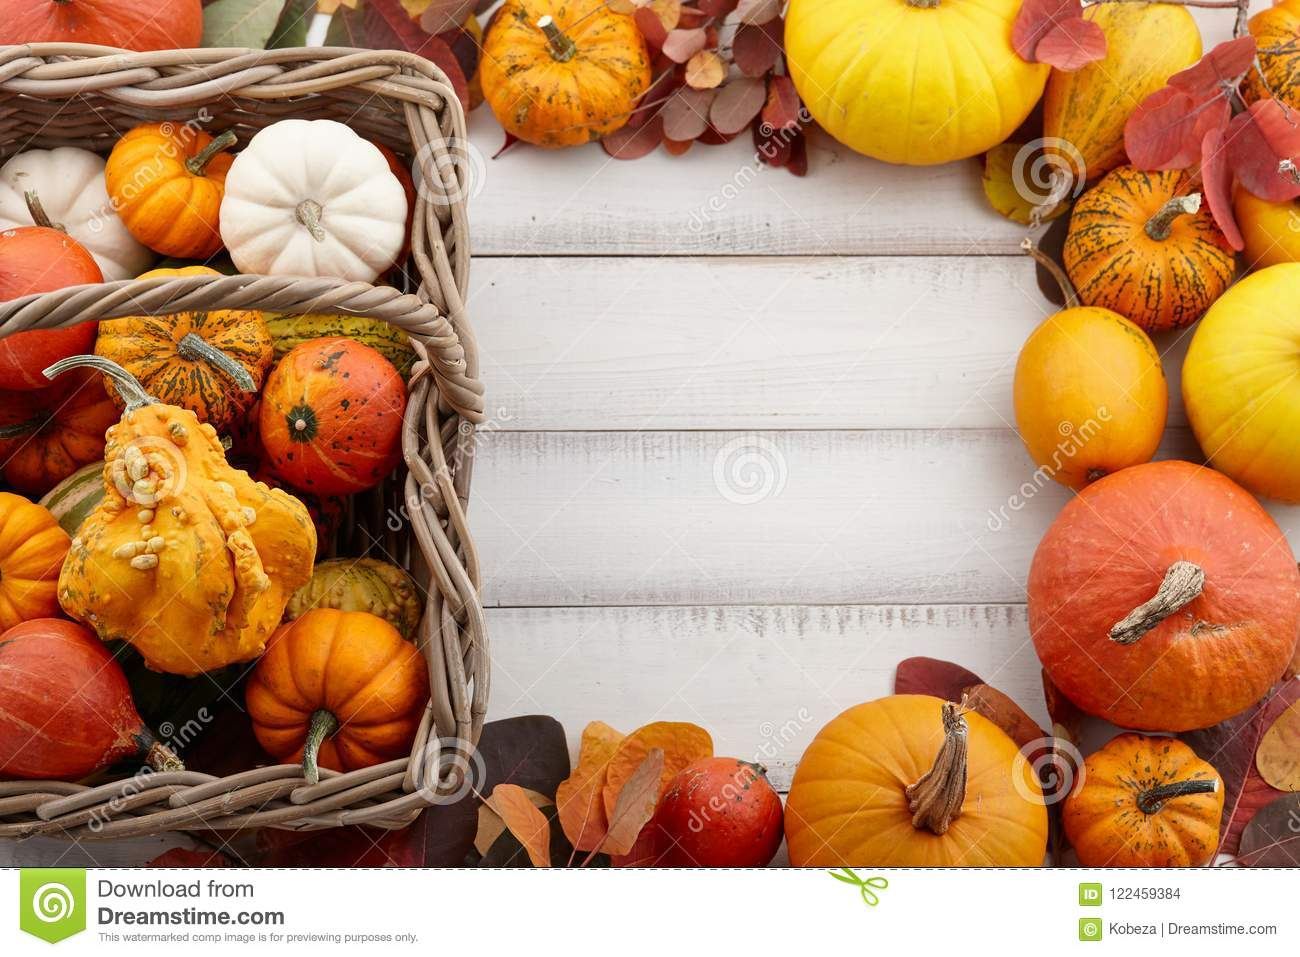 Basket With Colorful Pumpkins And Gourds For Halloween And